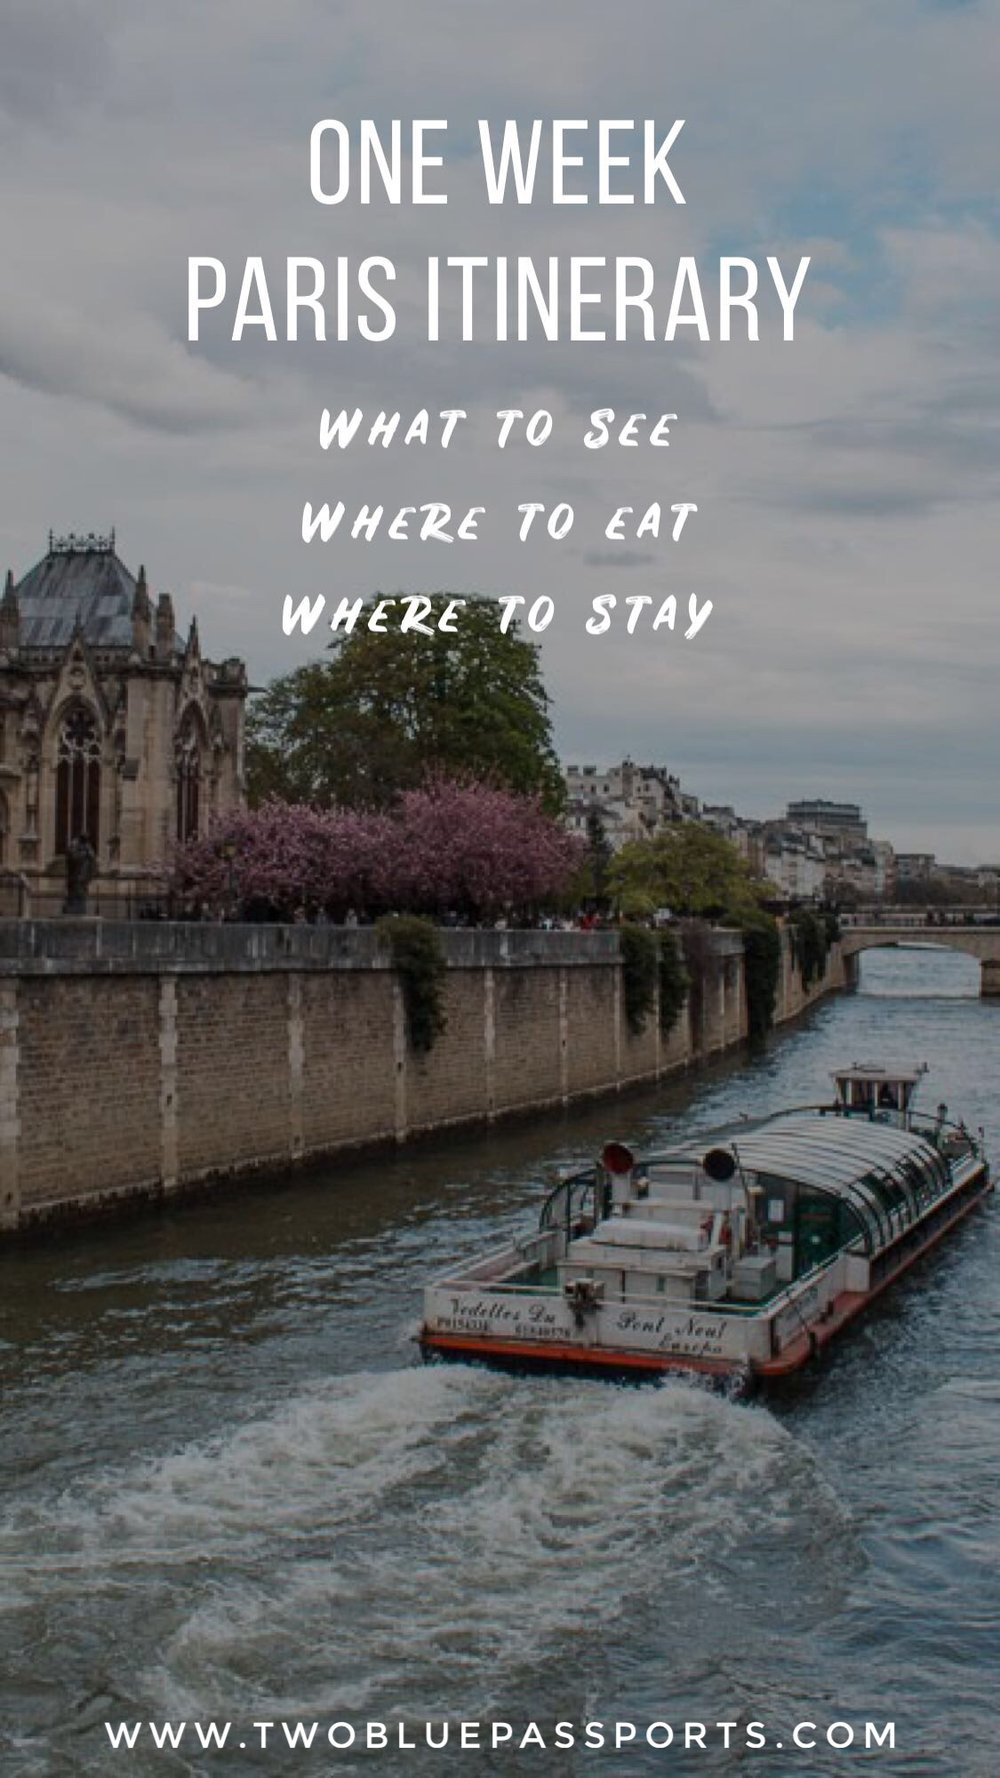 One week itinerary for Paris, France including what to see, where to eat, where to see and insider tips to help plan your trip.